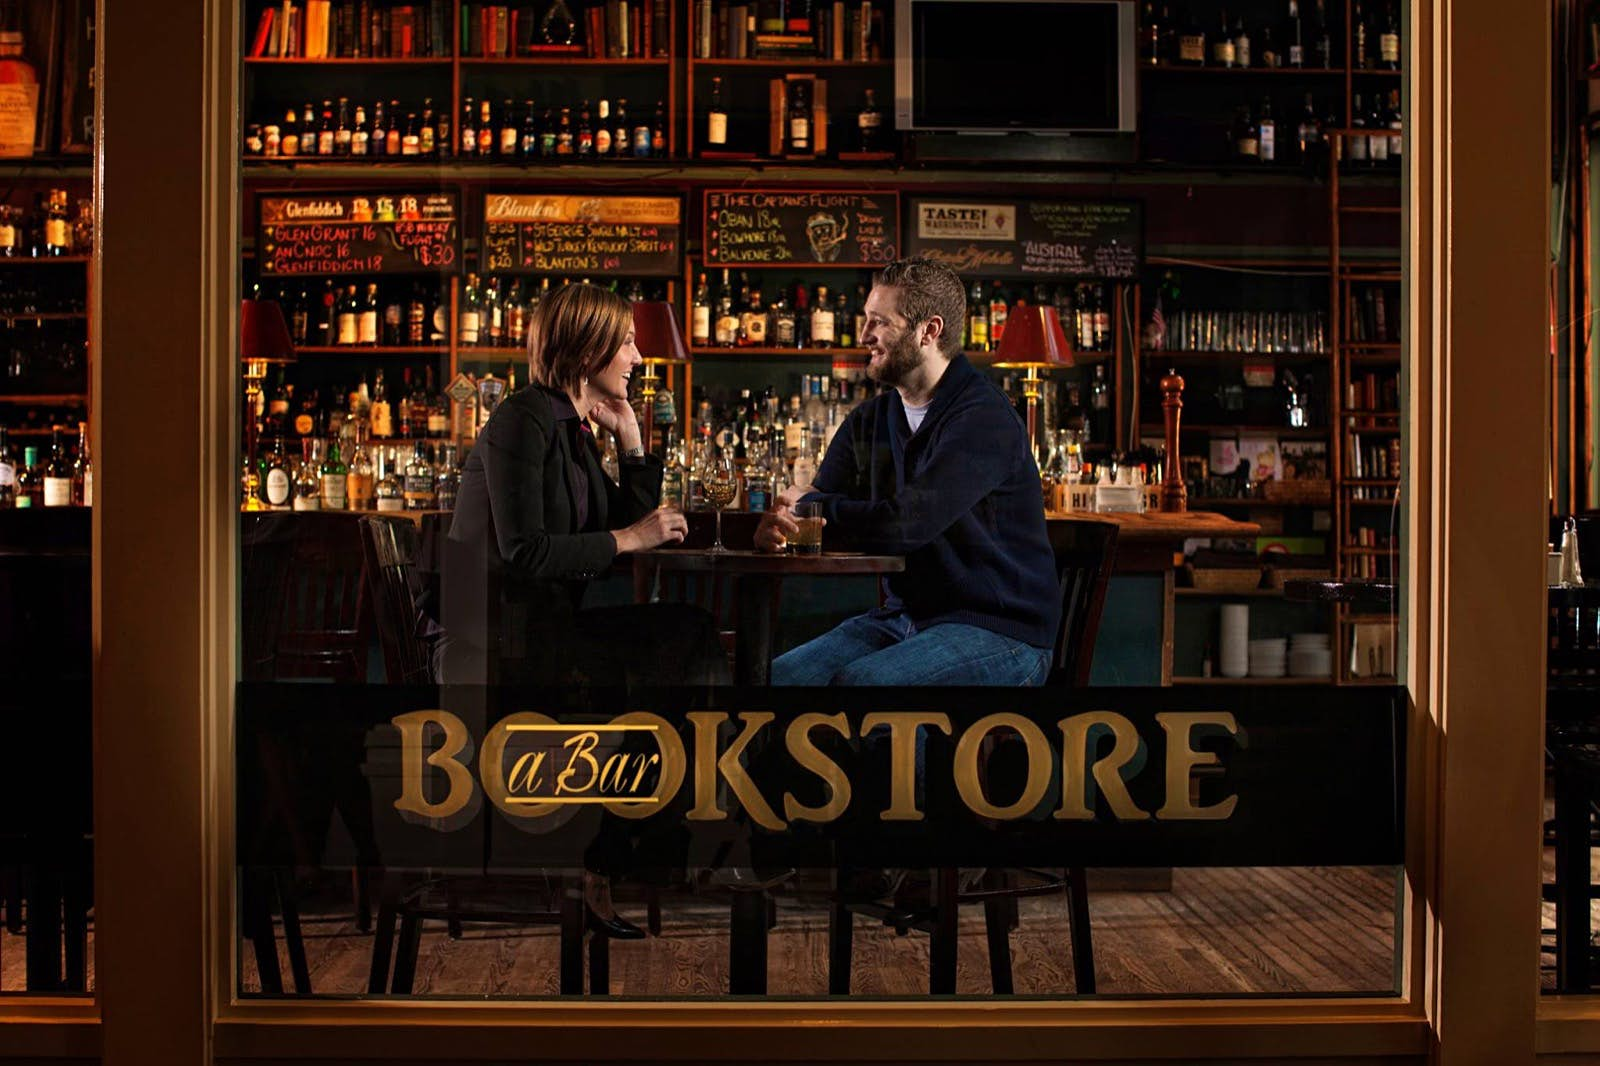 We see two people having drinks in a bar through the large front window, with the name Bookstore written on it. Perfect weekend in Seattle